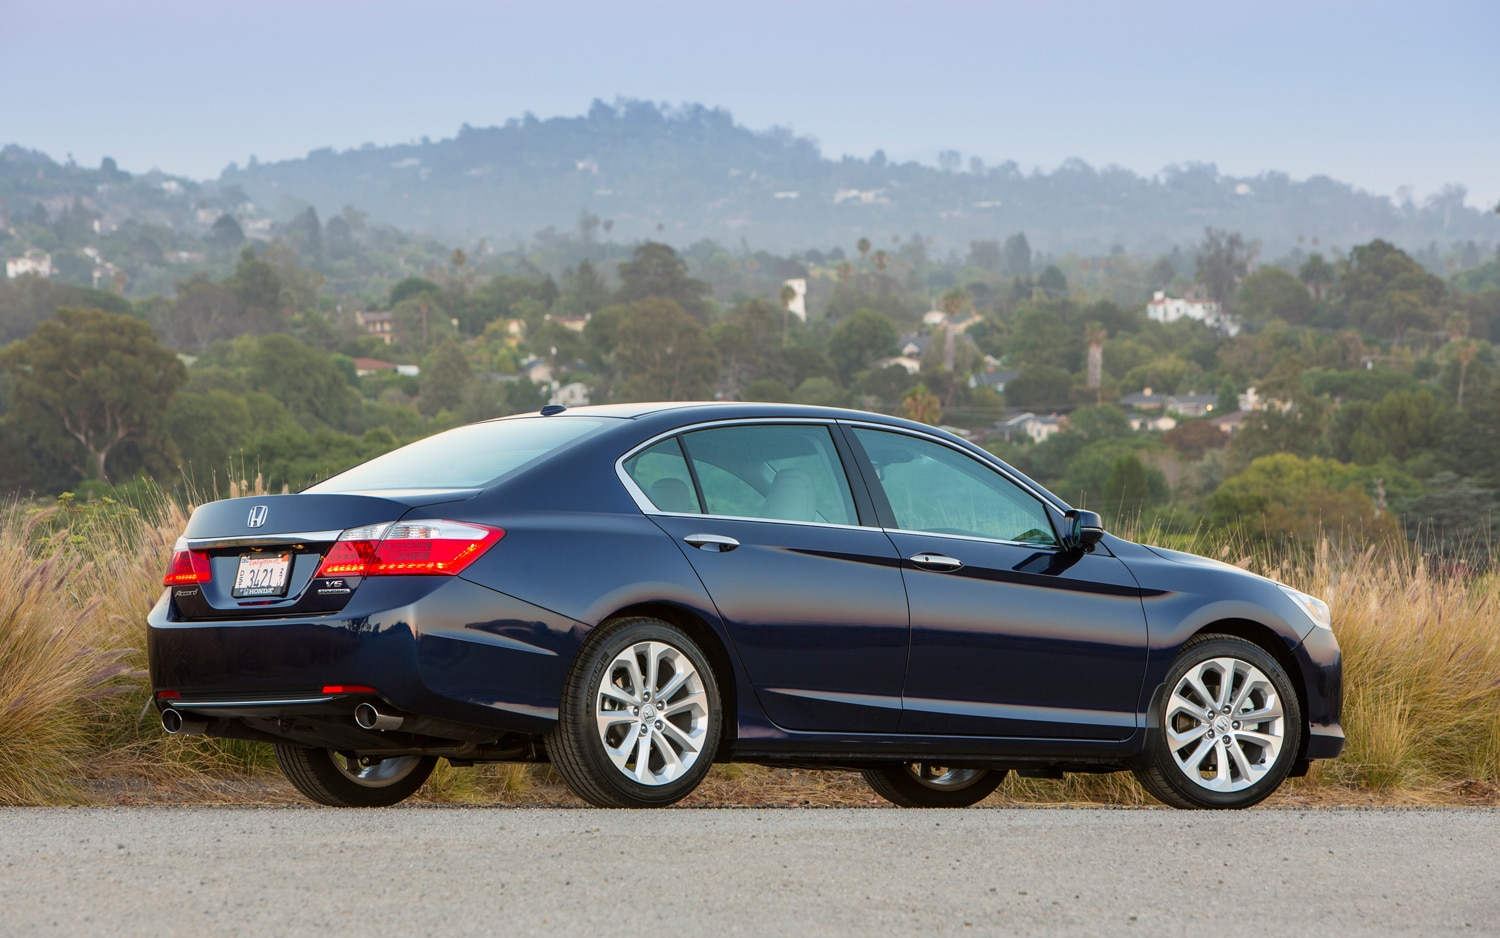 2013 honda accord first look automobile magazine for Honda accord used 2013